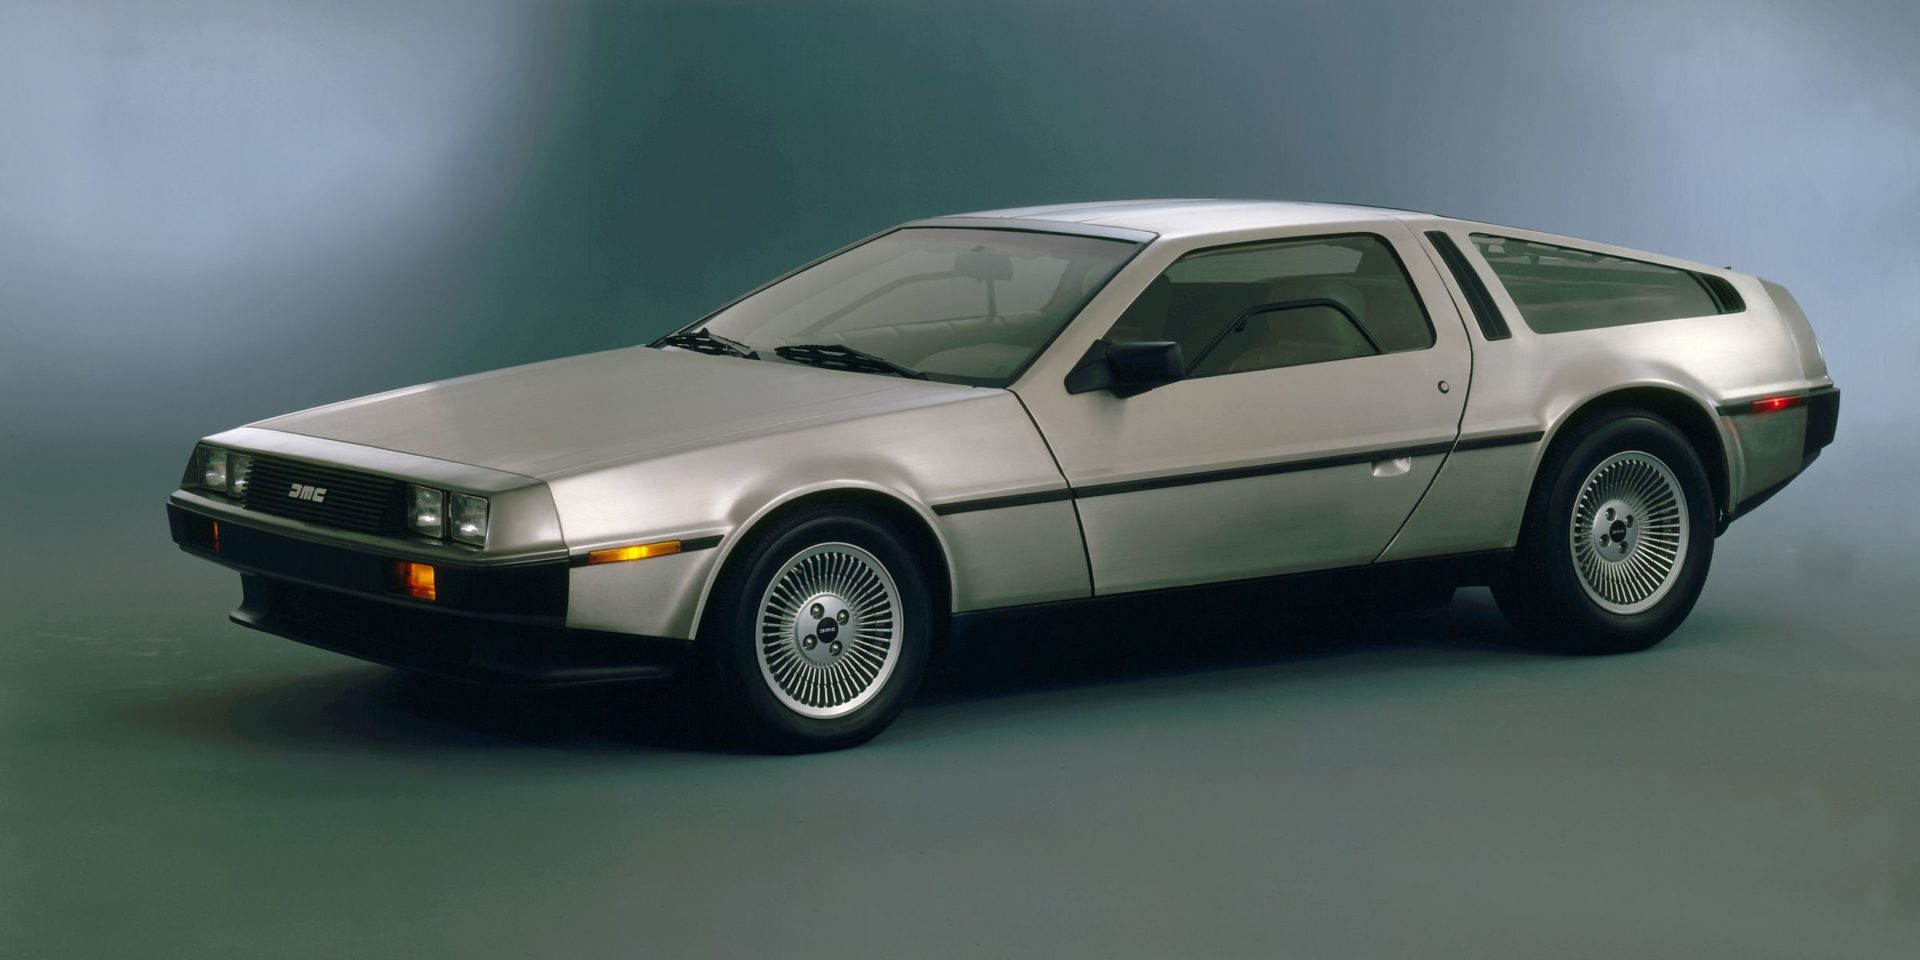 new DeLorean DMC-12